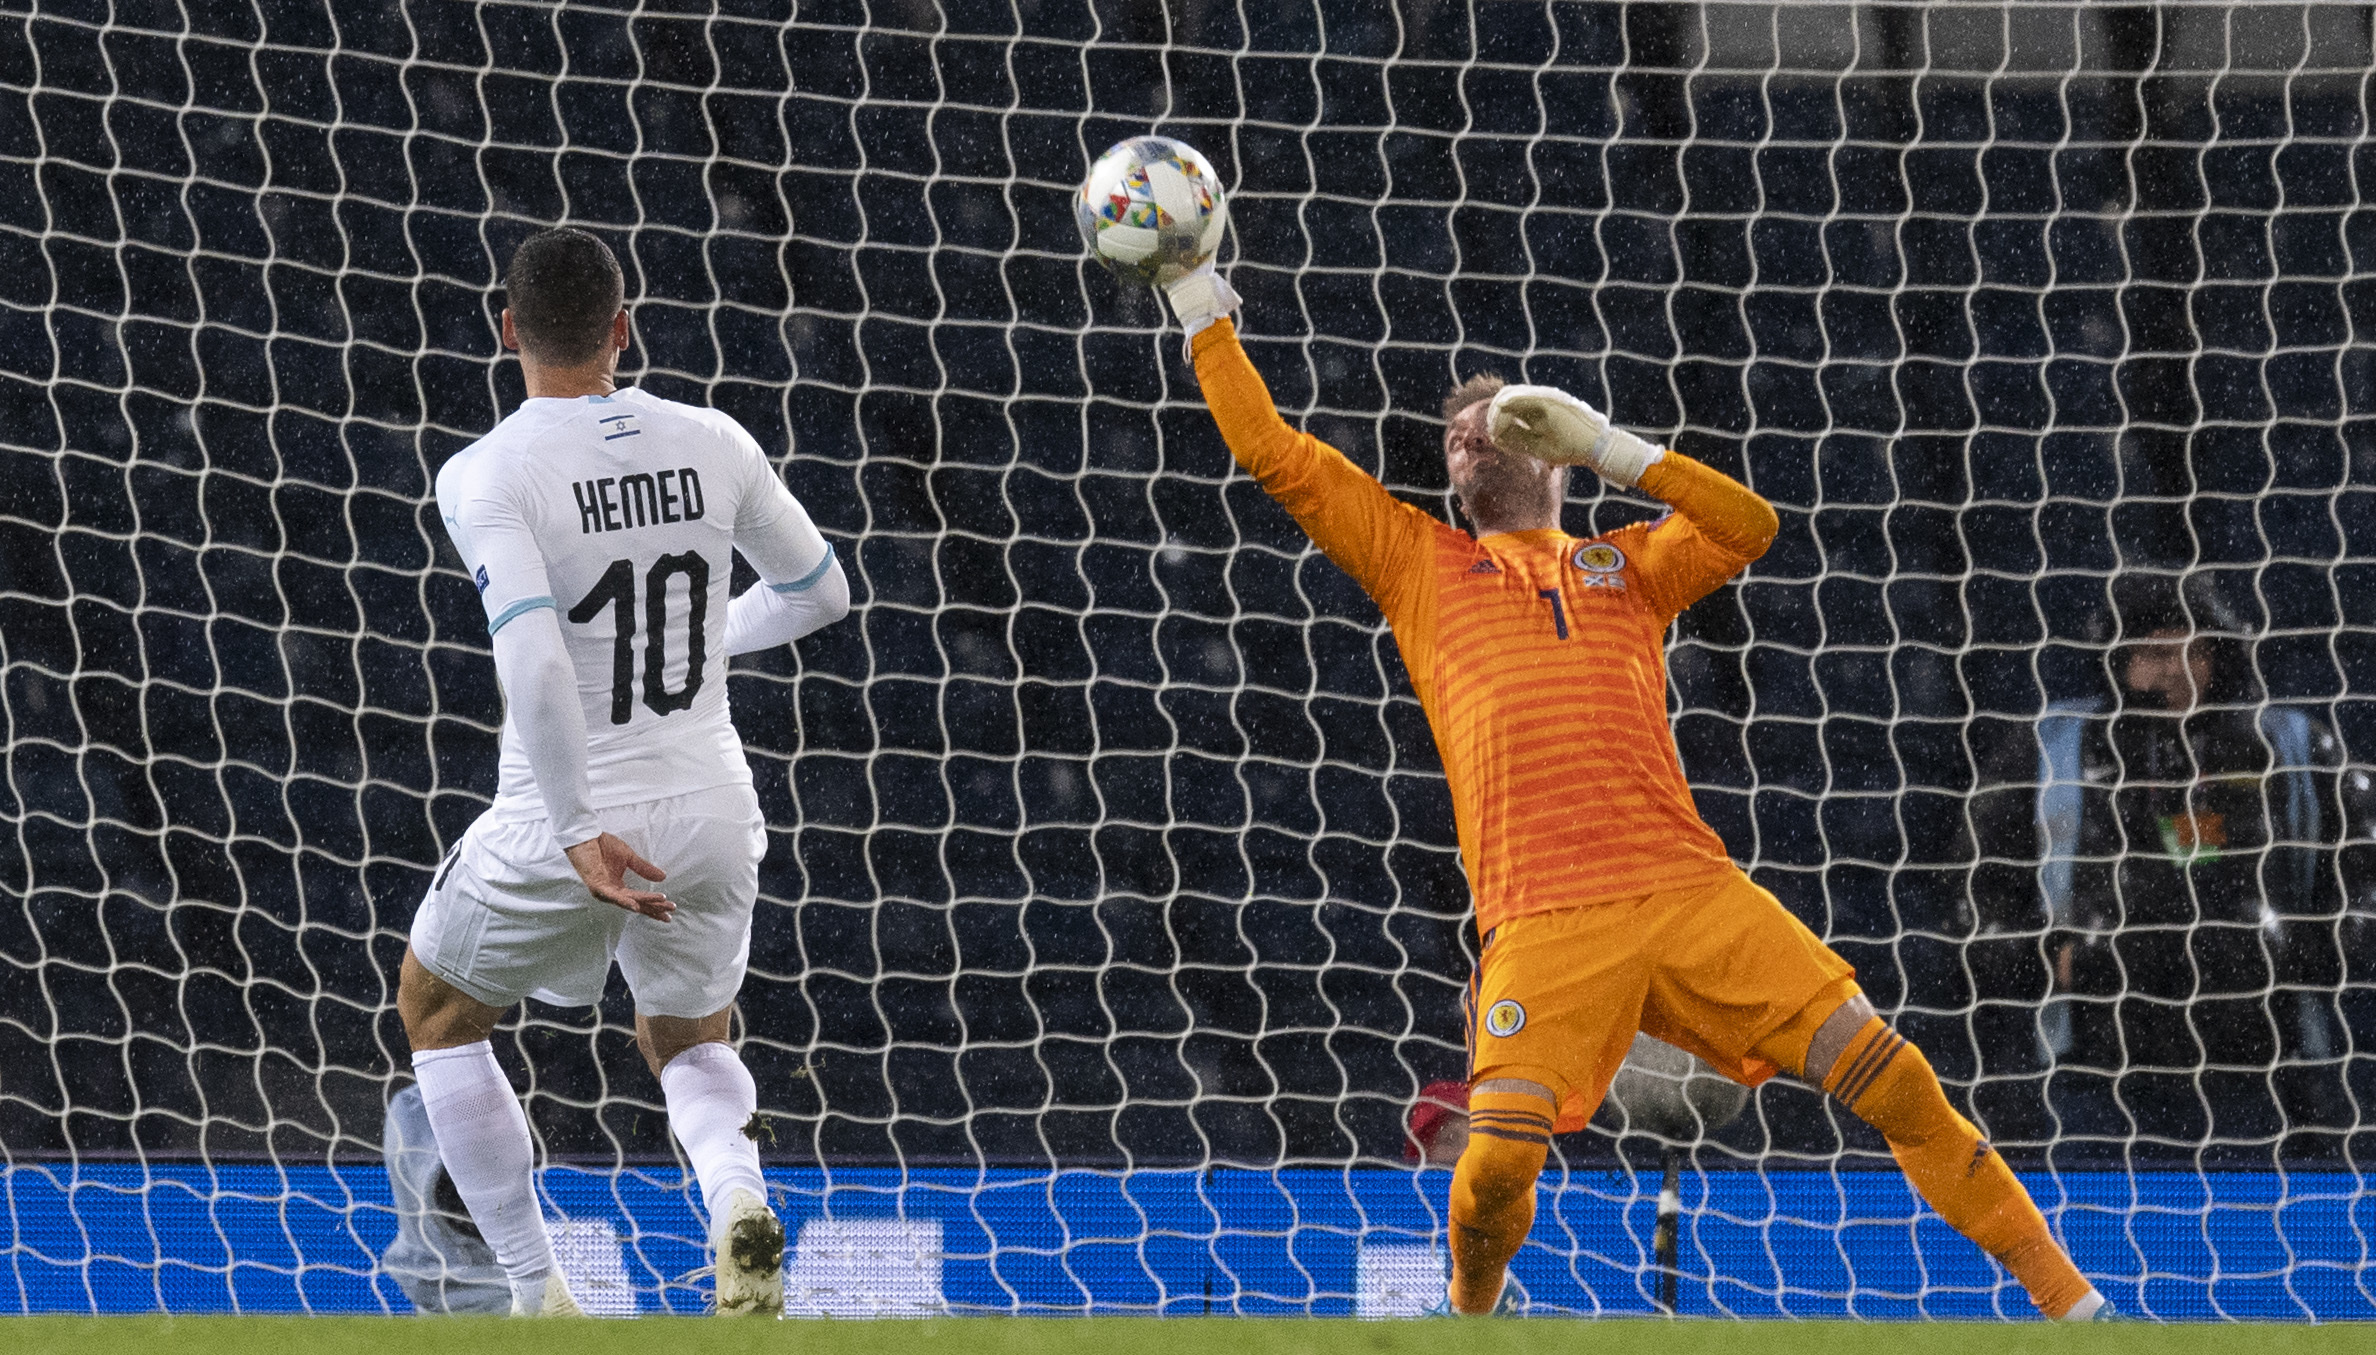 Allan McGregor's last action in a Scotland jersey was this crucial save against Israel.